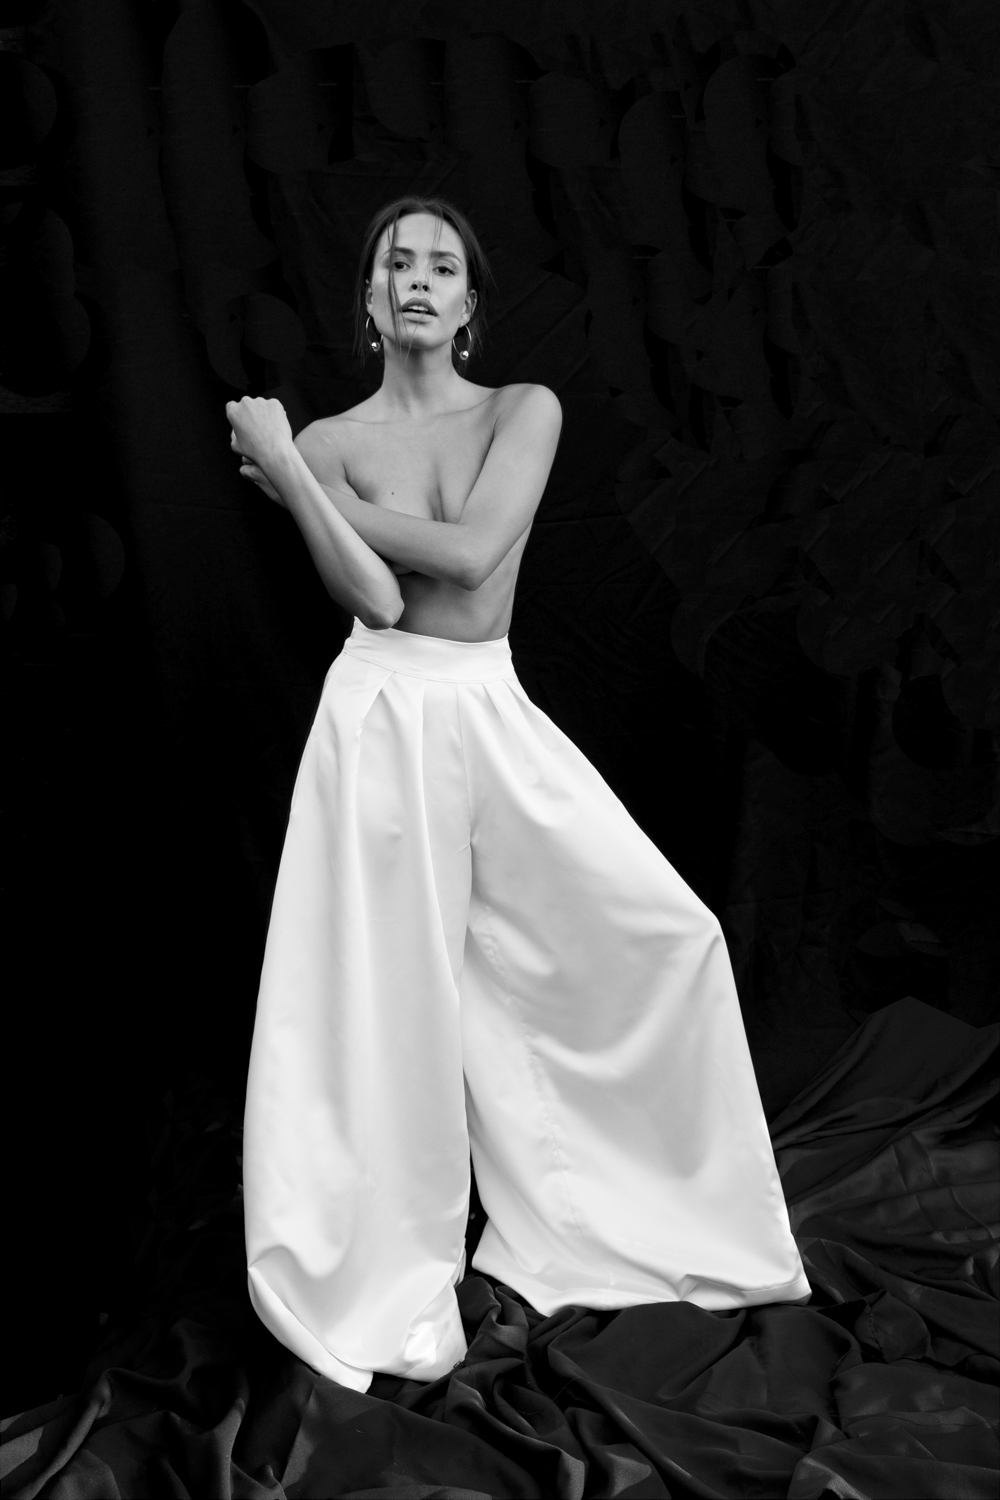 LUCIANA - High rise, ultra wide, super fun luxe satin bridal pant. A hit down the aisle or 'pon the dance floor.